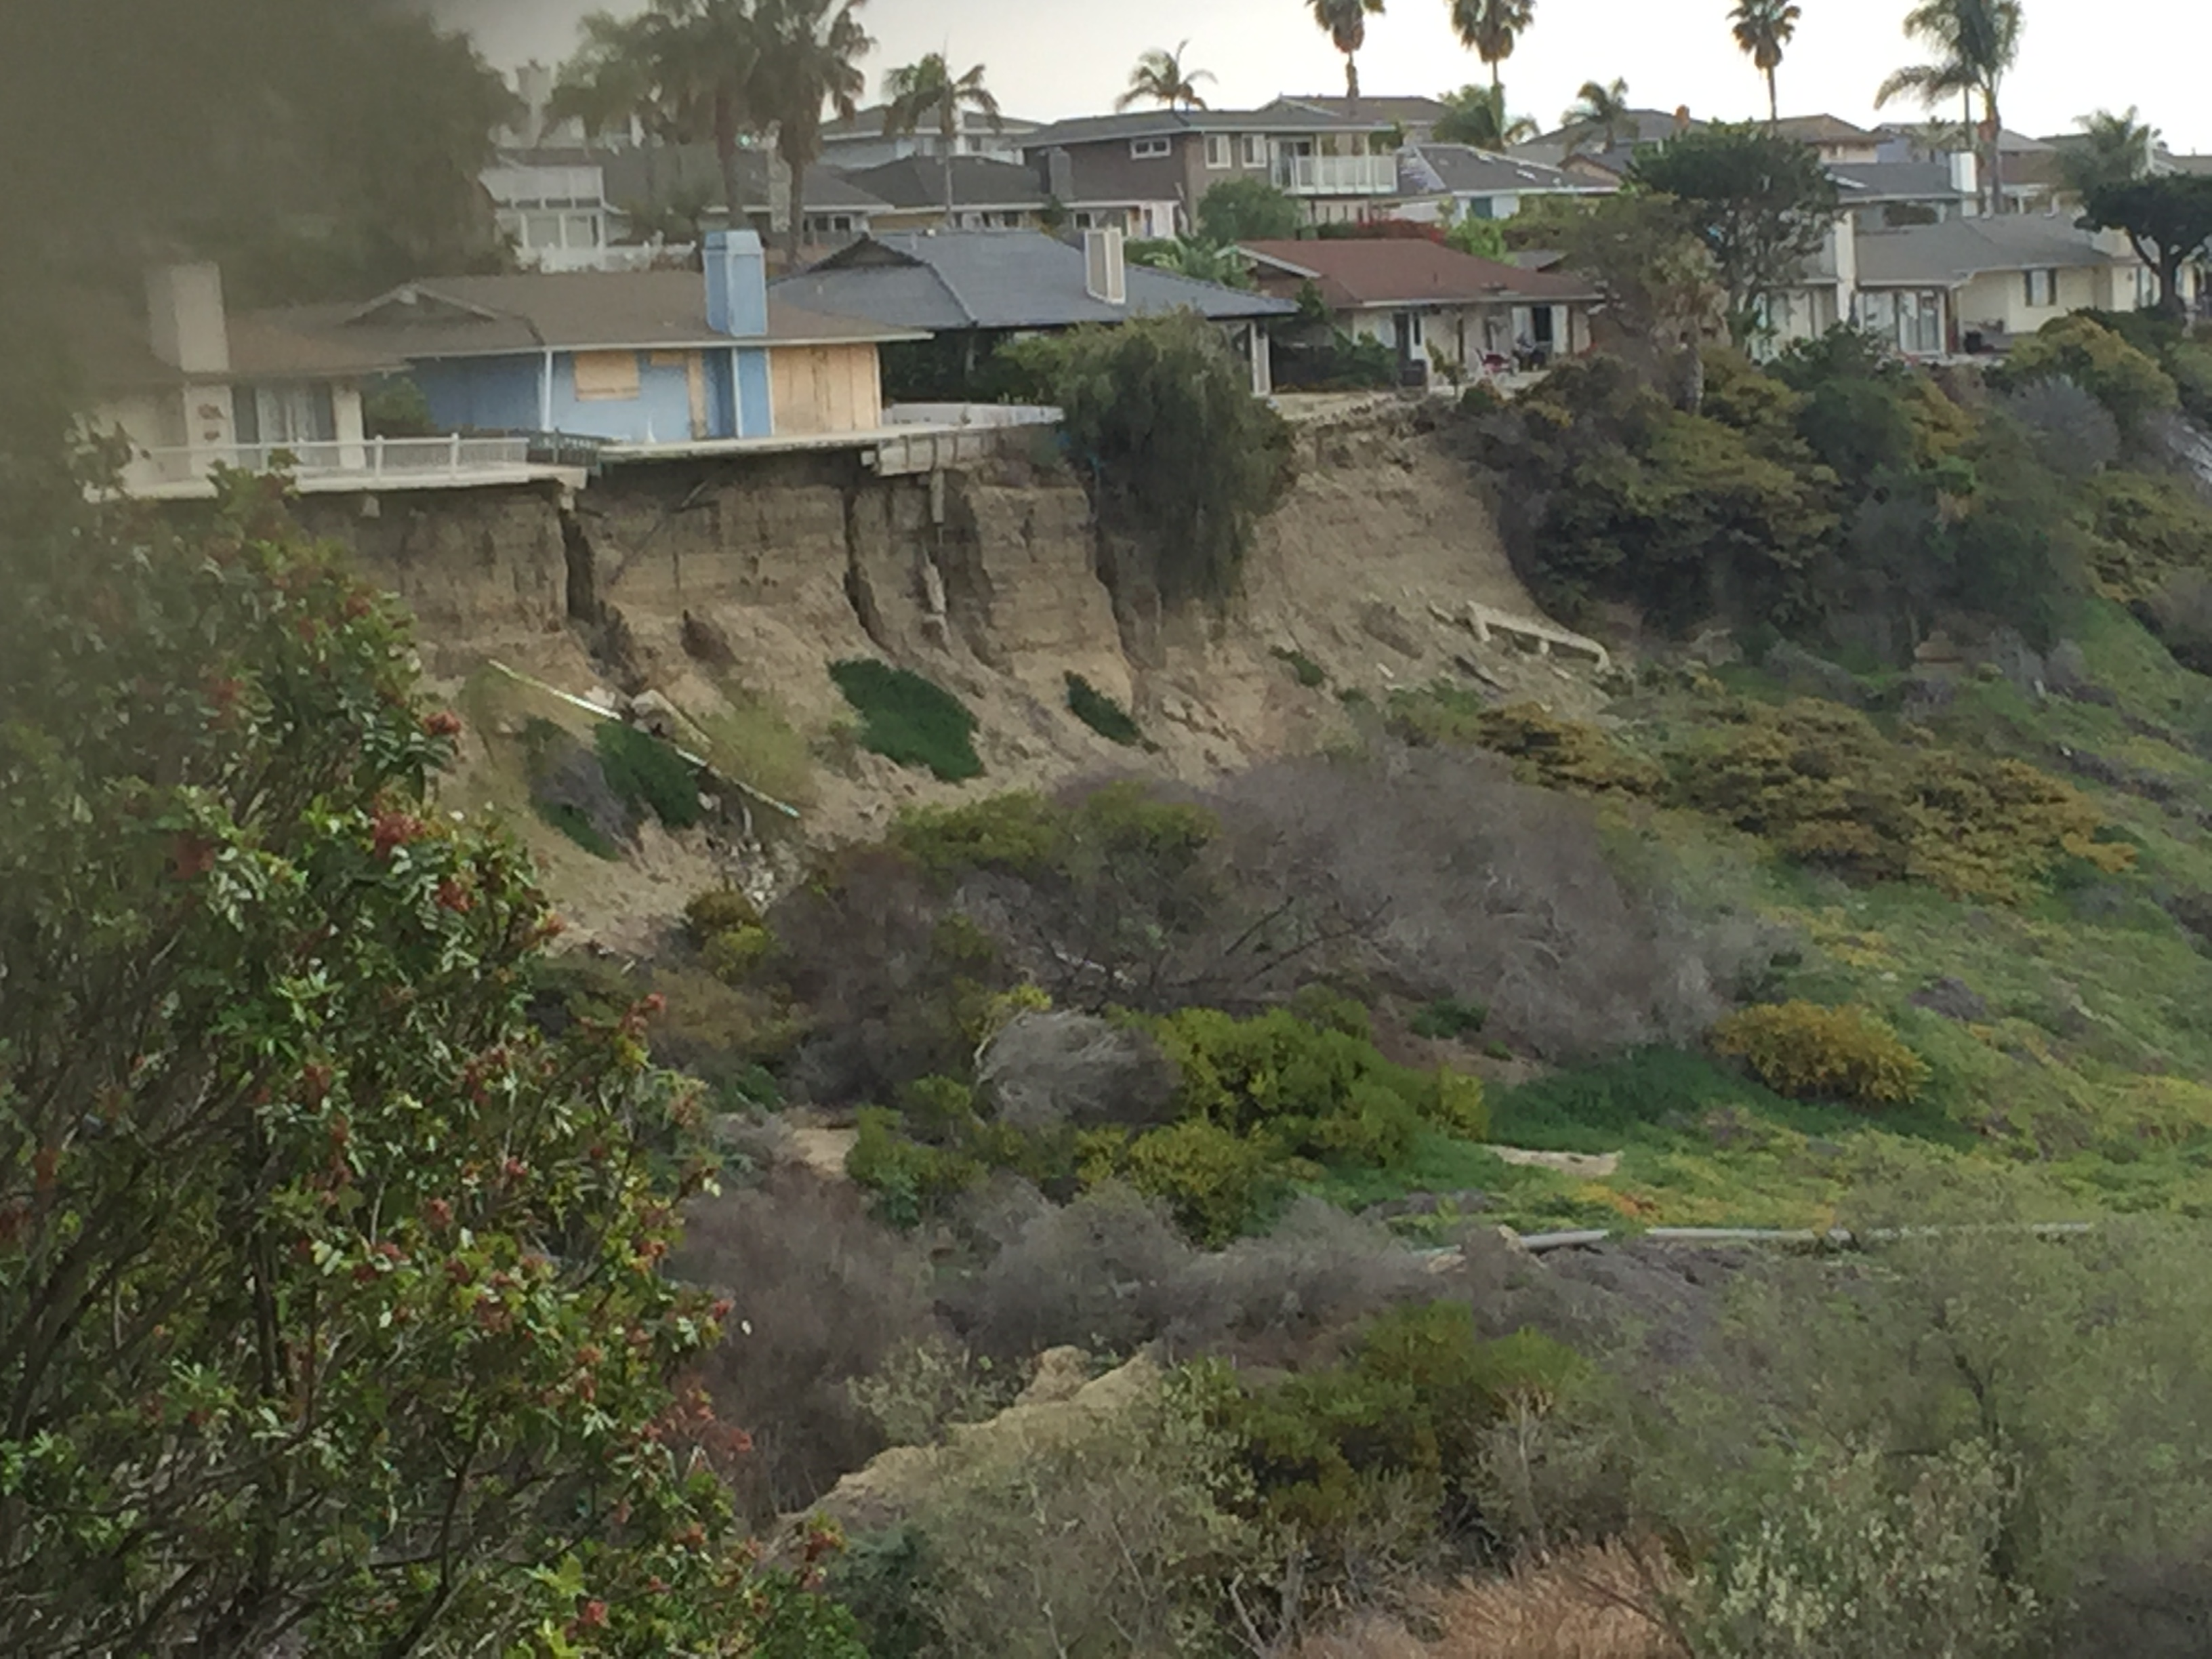 Damage to the bluffs from the landslide can be seen from the opposite side of the canyon. Photo: File